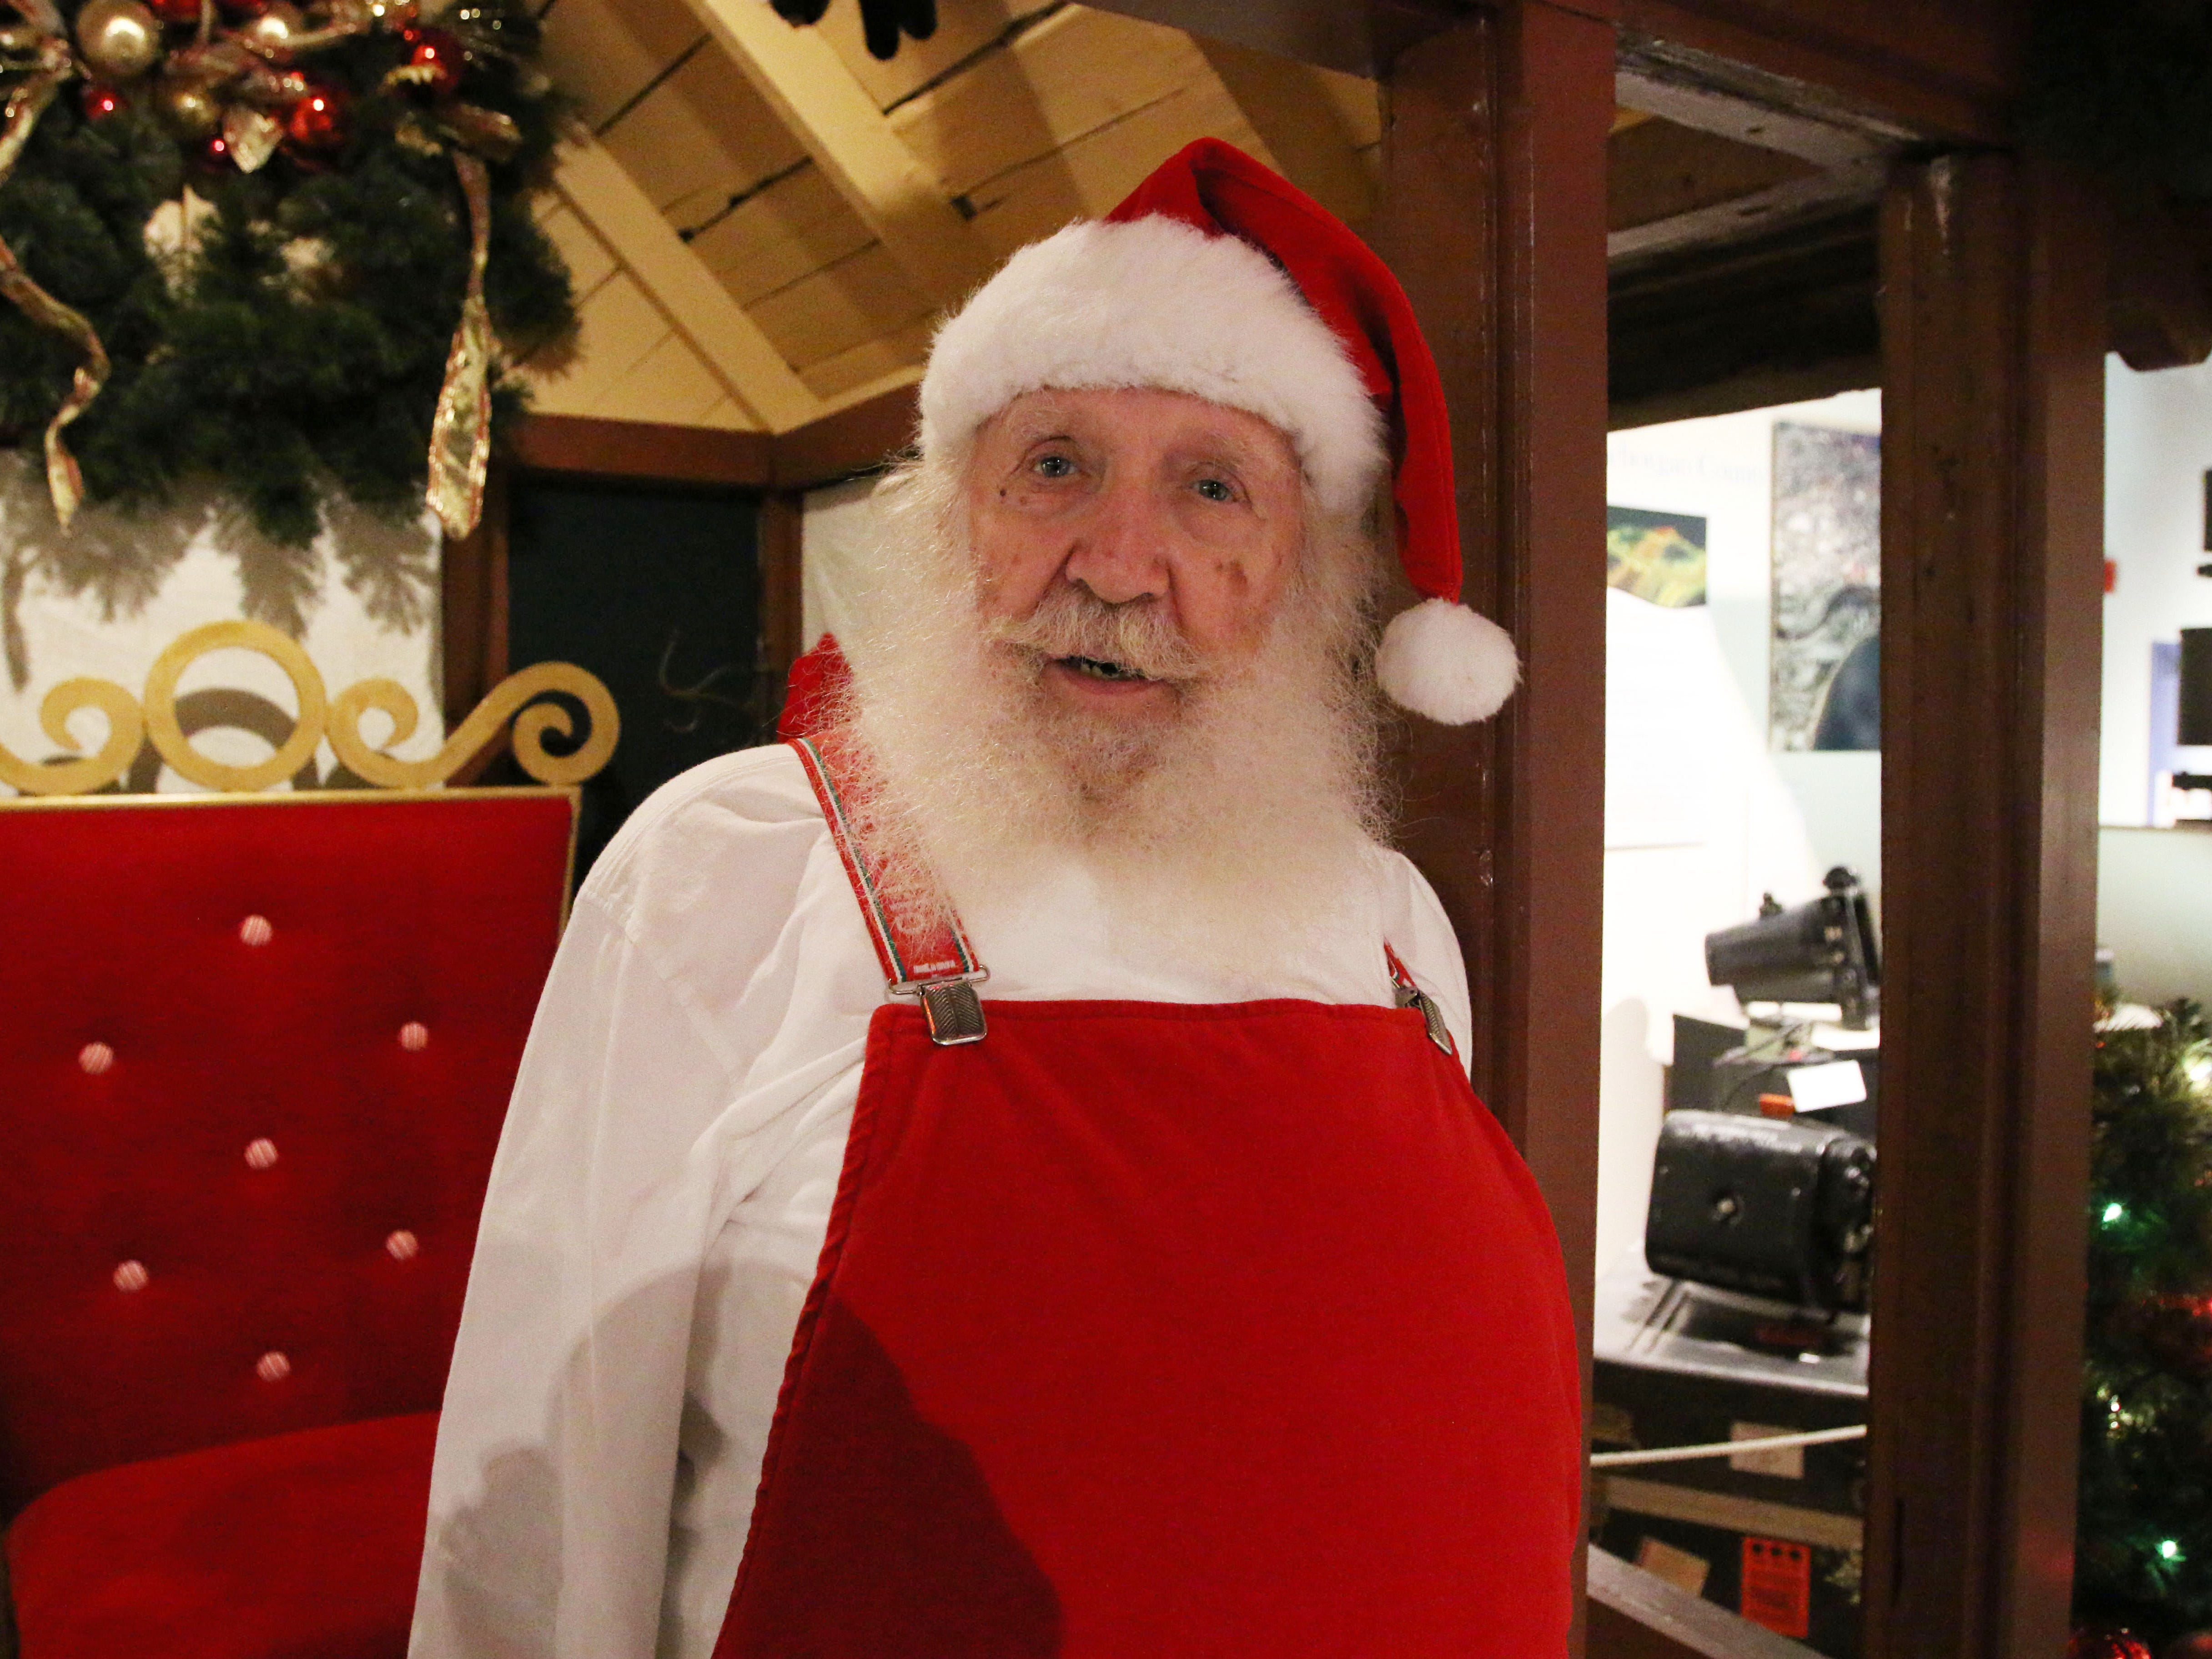 Santa Claus poses at the Sheboygan County Historical Museum's Holiday Memories, Friday, November 23, 2018, in Sheboygan, Wis.  Santa will be there at times during the holiday to get those last minute requests in.